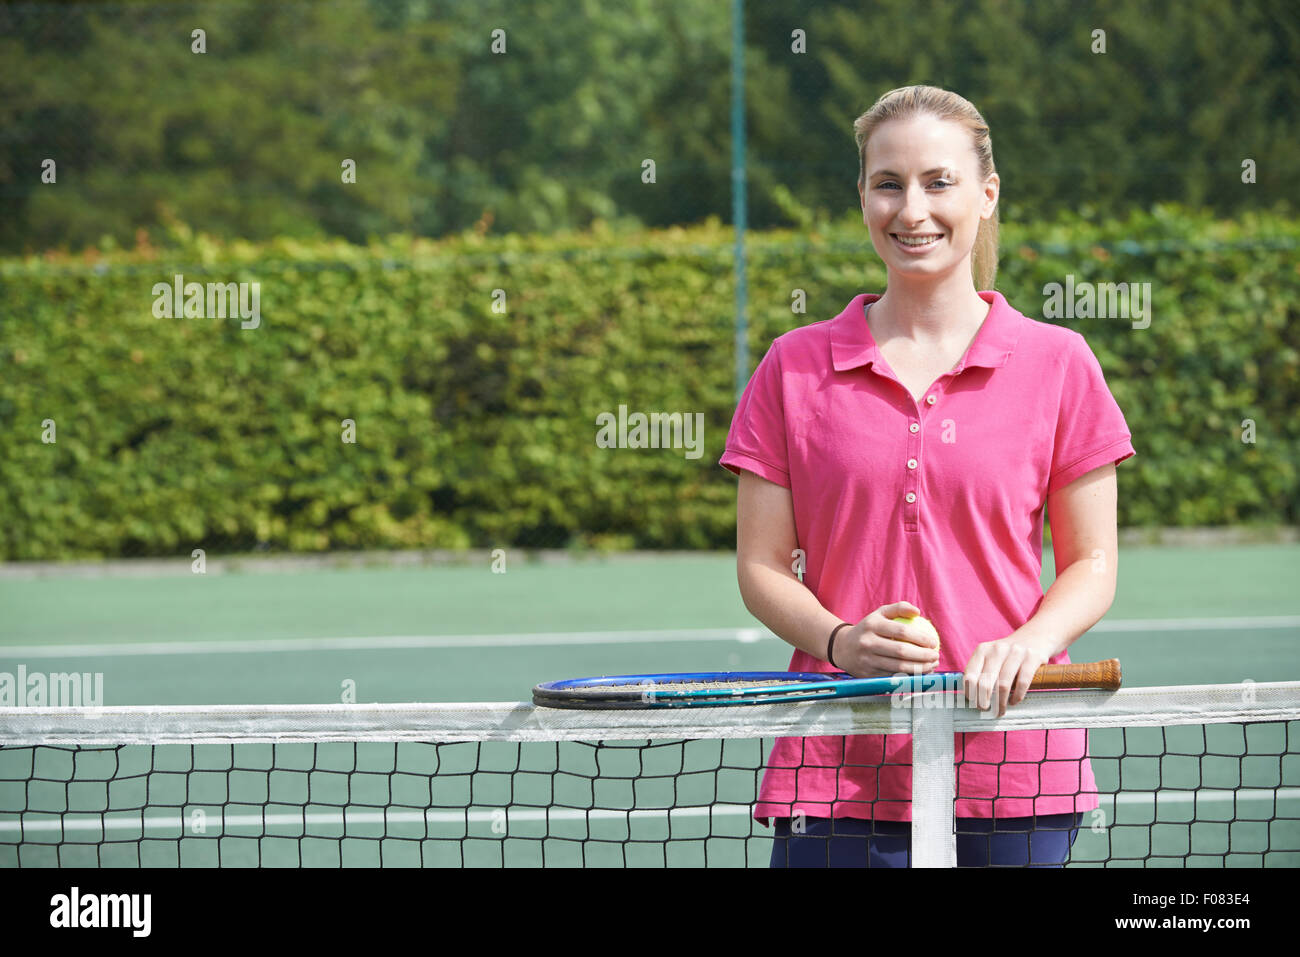 Portrait of Female Tennis Coach sur cour Photo Stock